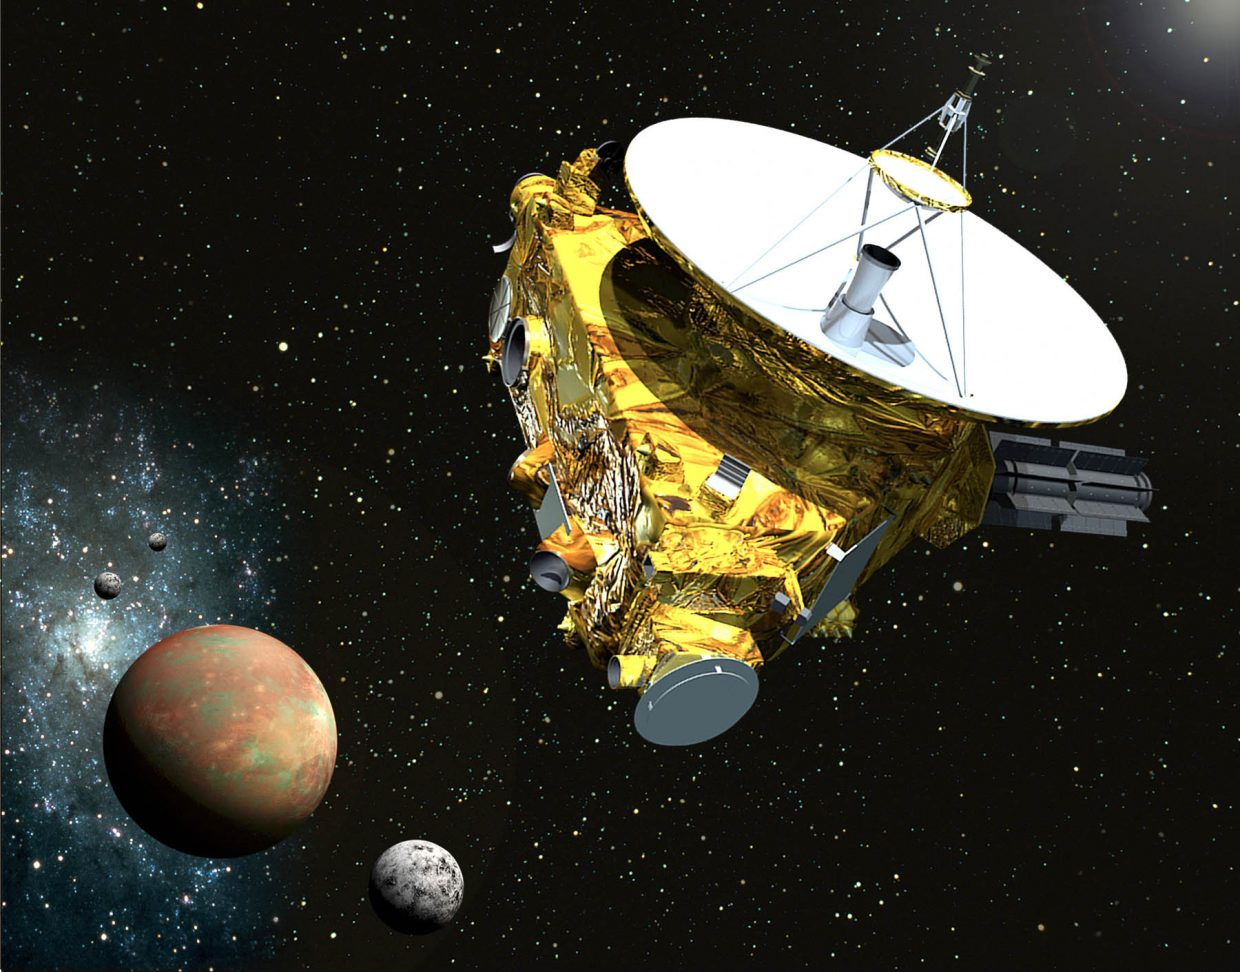 After 10 years and nearly 4 billion miles, NASA's New Horizons spacecraft will finally arrive at Pluto in July of this year. New Horizons will shoot through the Pluto system, traveling faster than a high speed rifle bullet, and open our eyes to this mysterious mini-world for the first time. Among other things, astronomers hope to learn whether or not Pluto's five moons were formed from a cataclysmic collision between Pluto and another mini-planet eons ago.